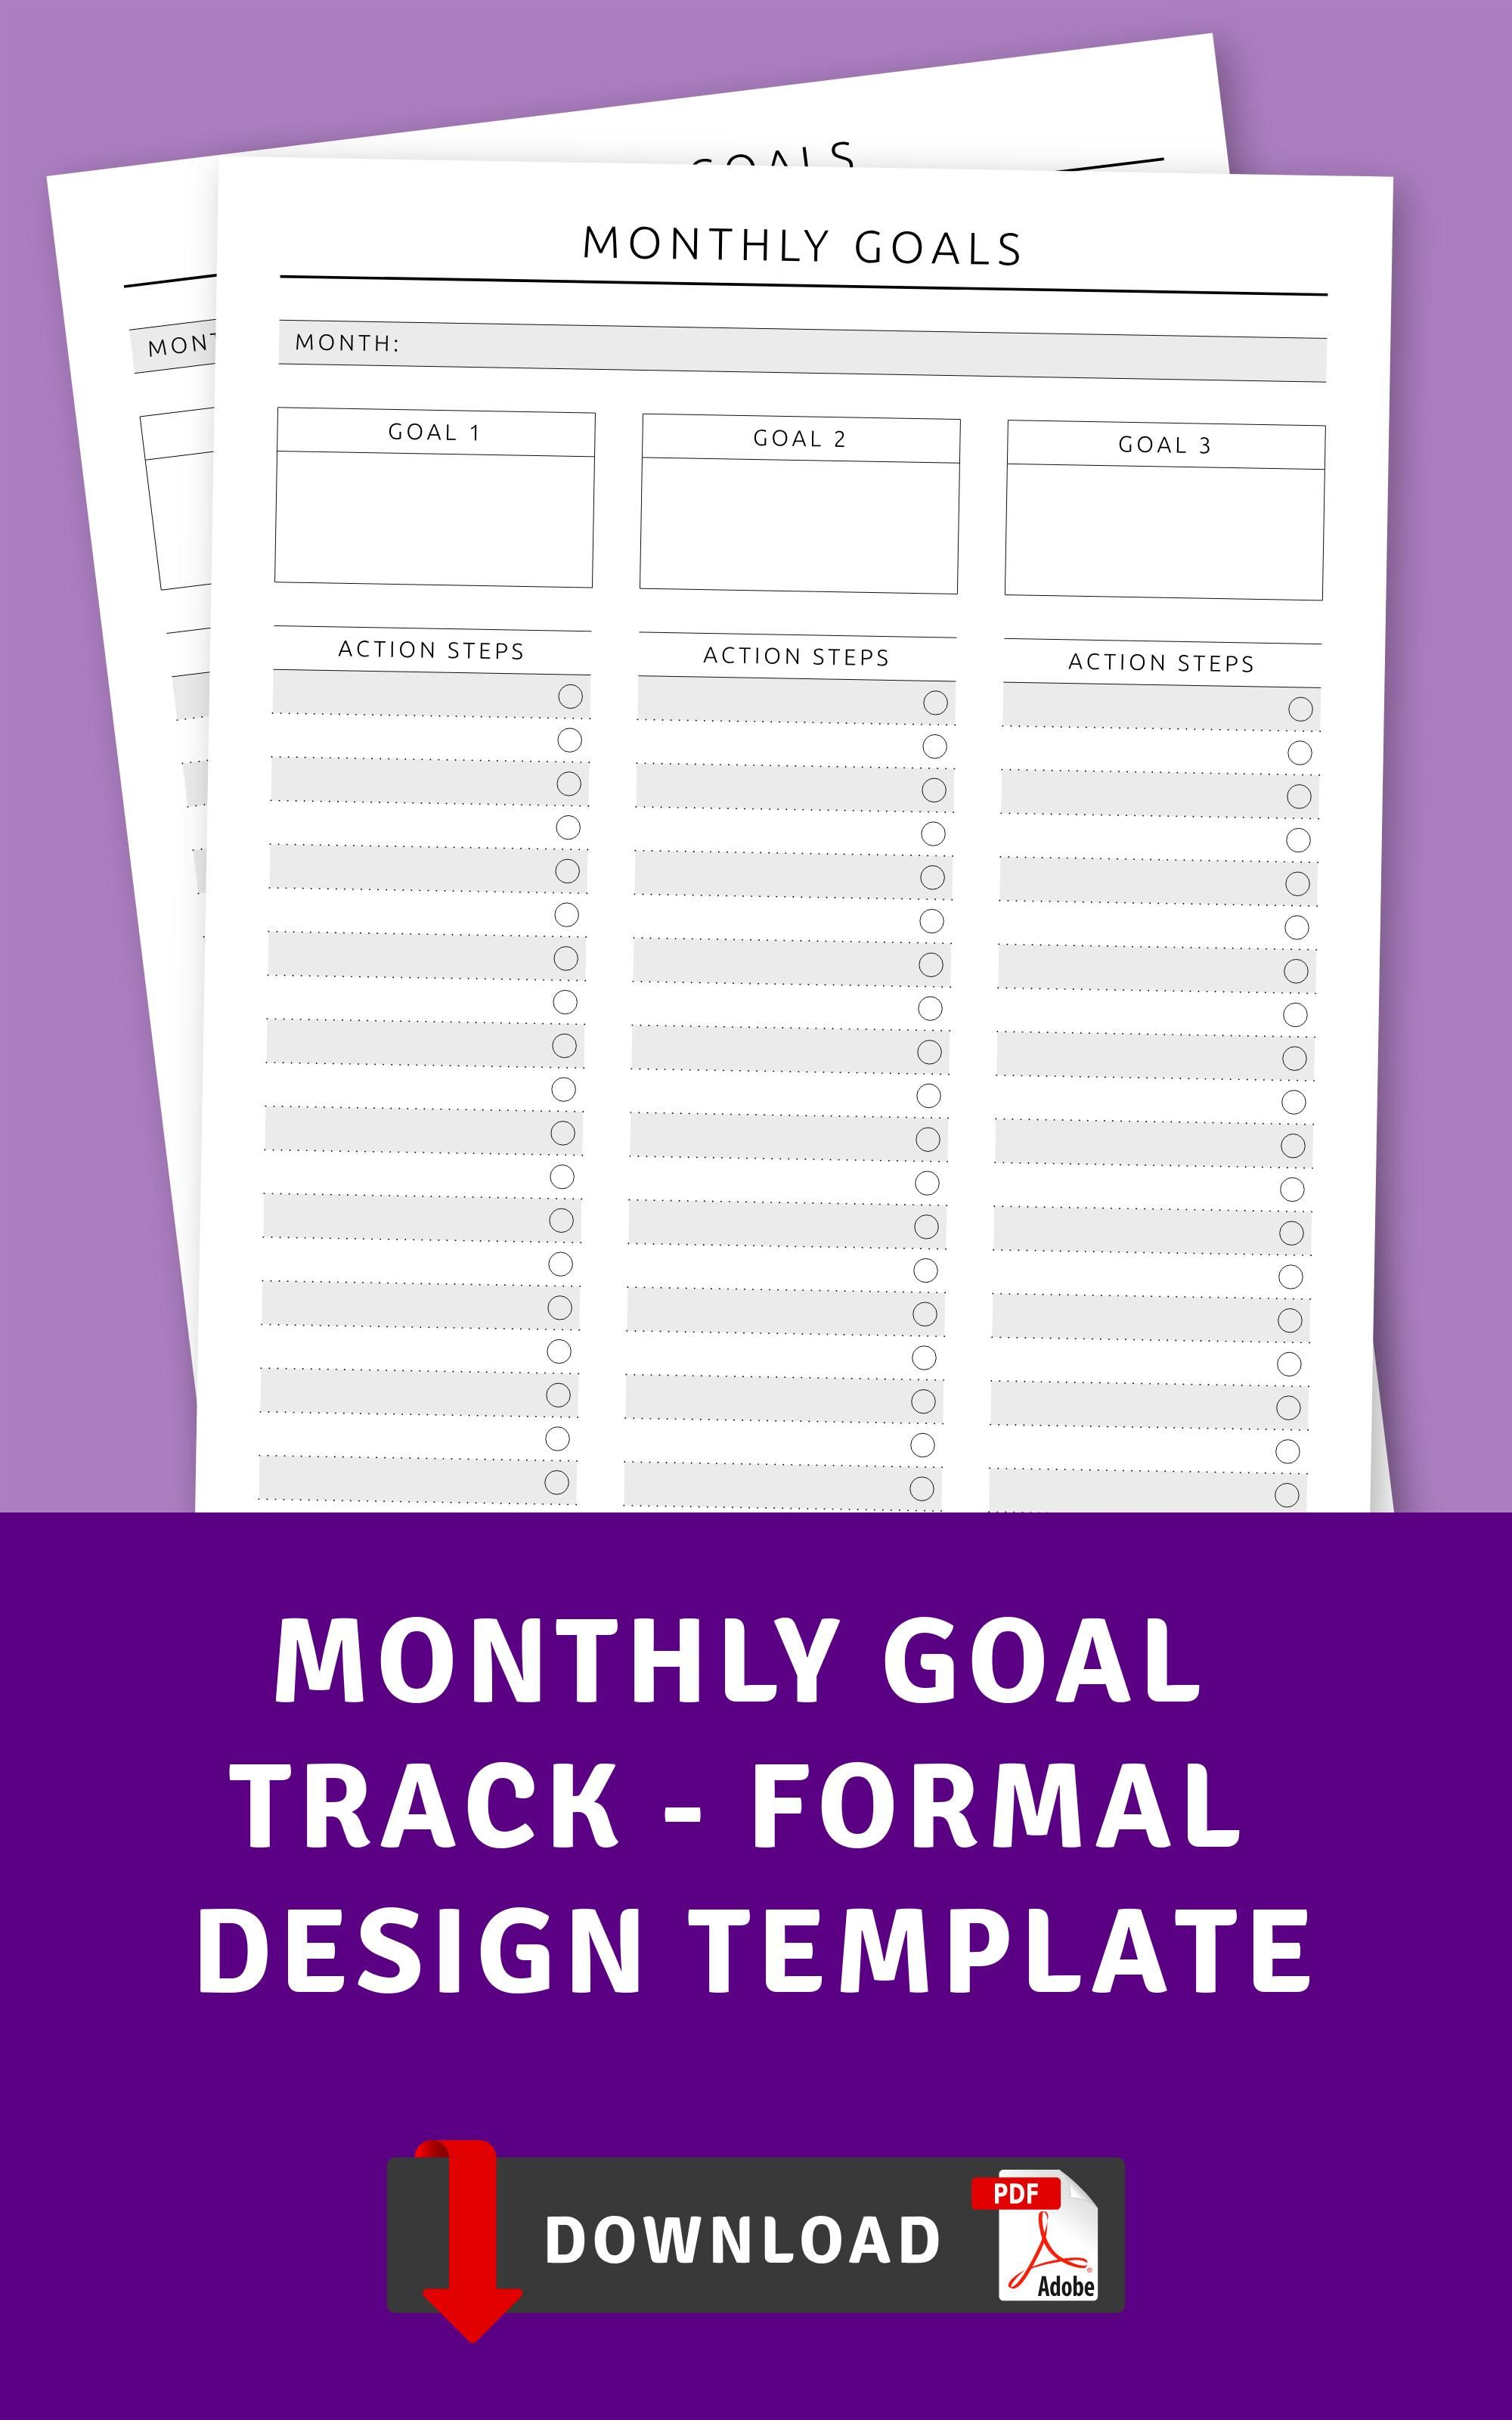 Monthly Goal Track